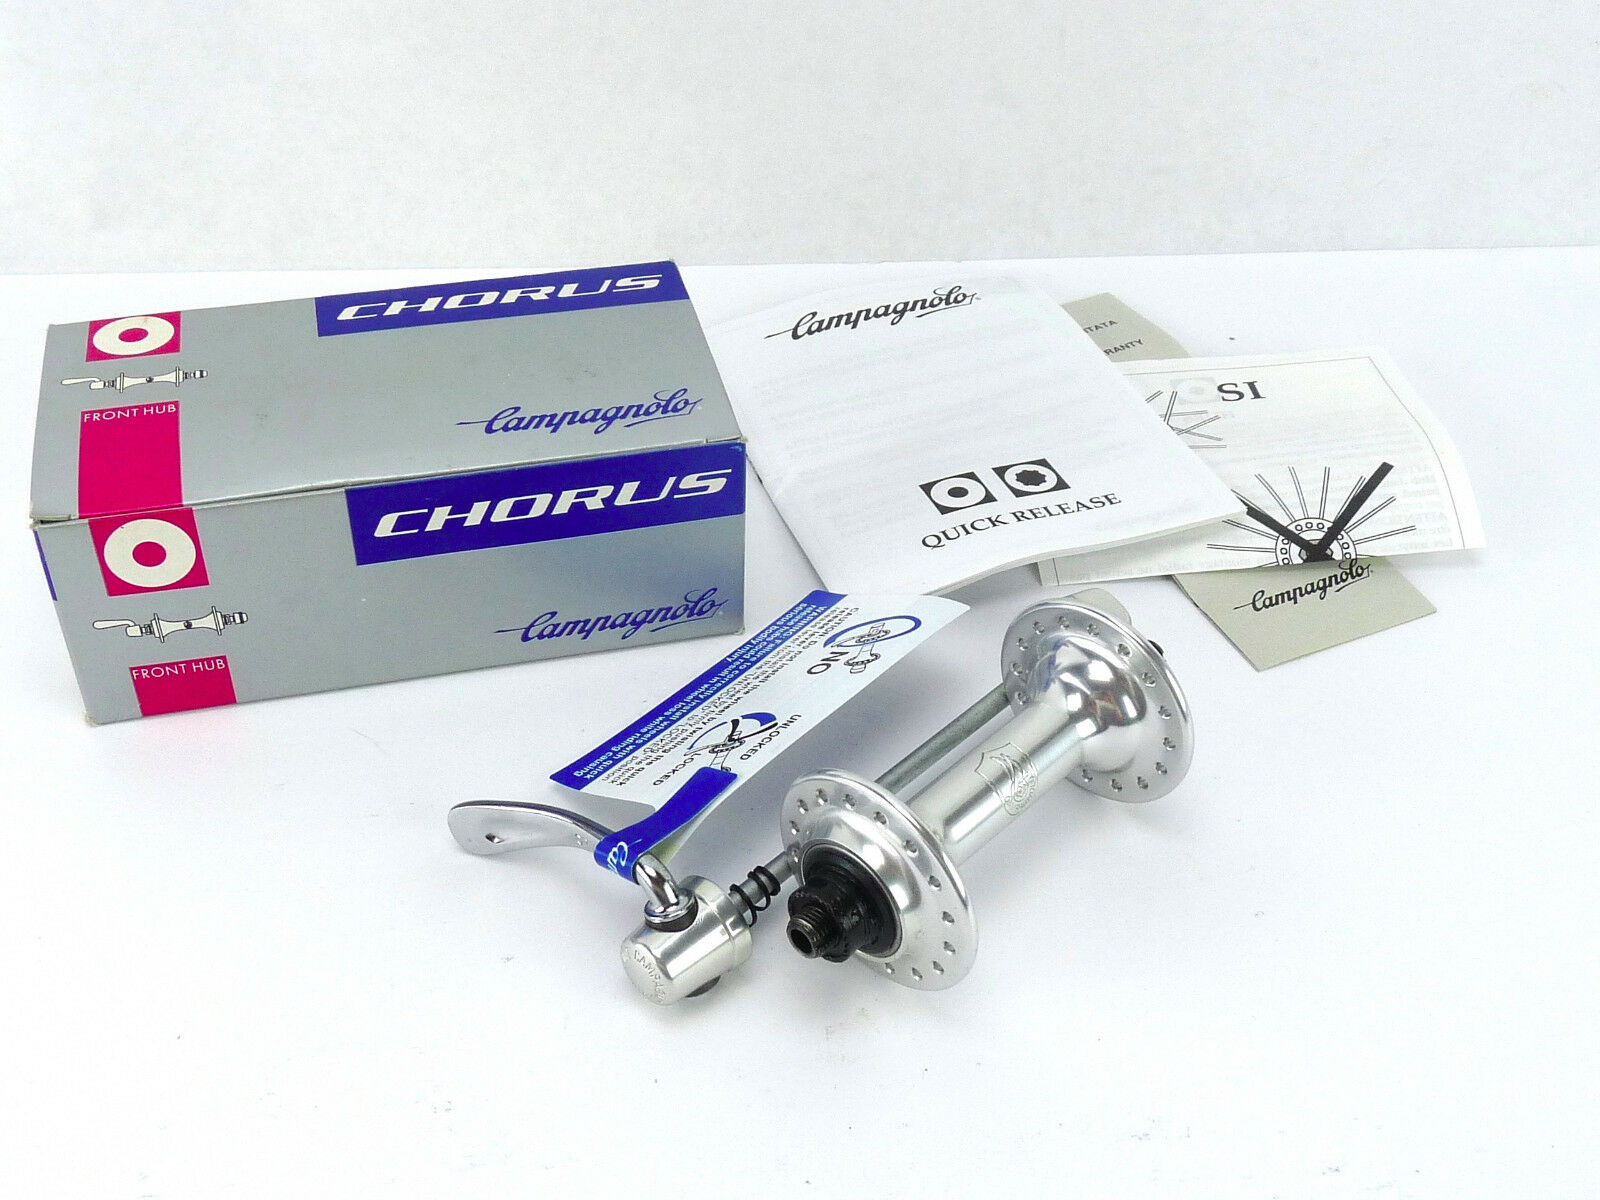 Campagnolo Chorus Front Hub 32 Holes 1999  Vintage Bike 9 speed era LAST ONE NOS  new style